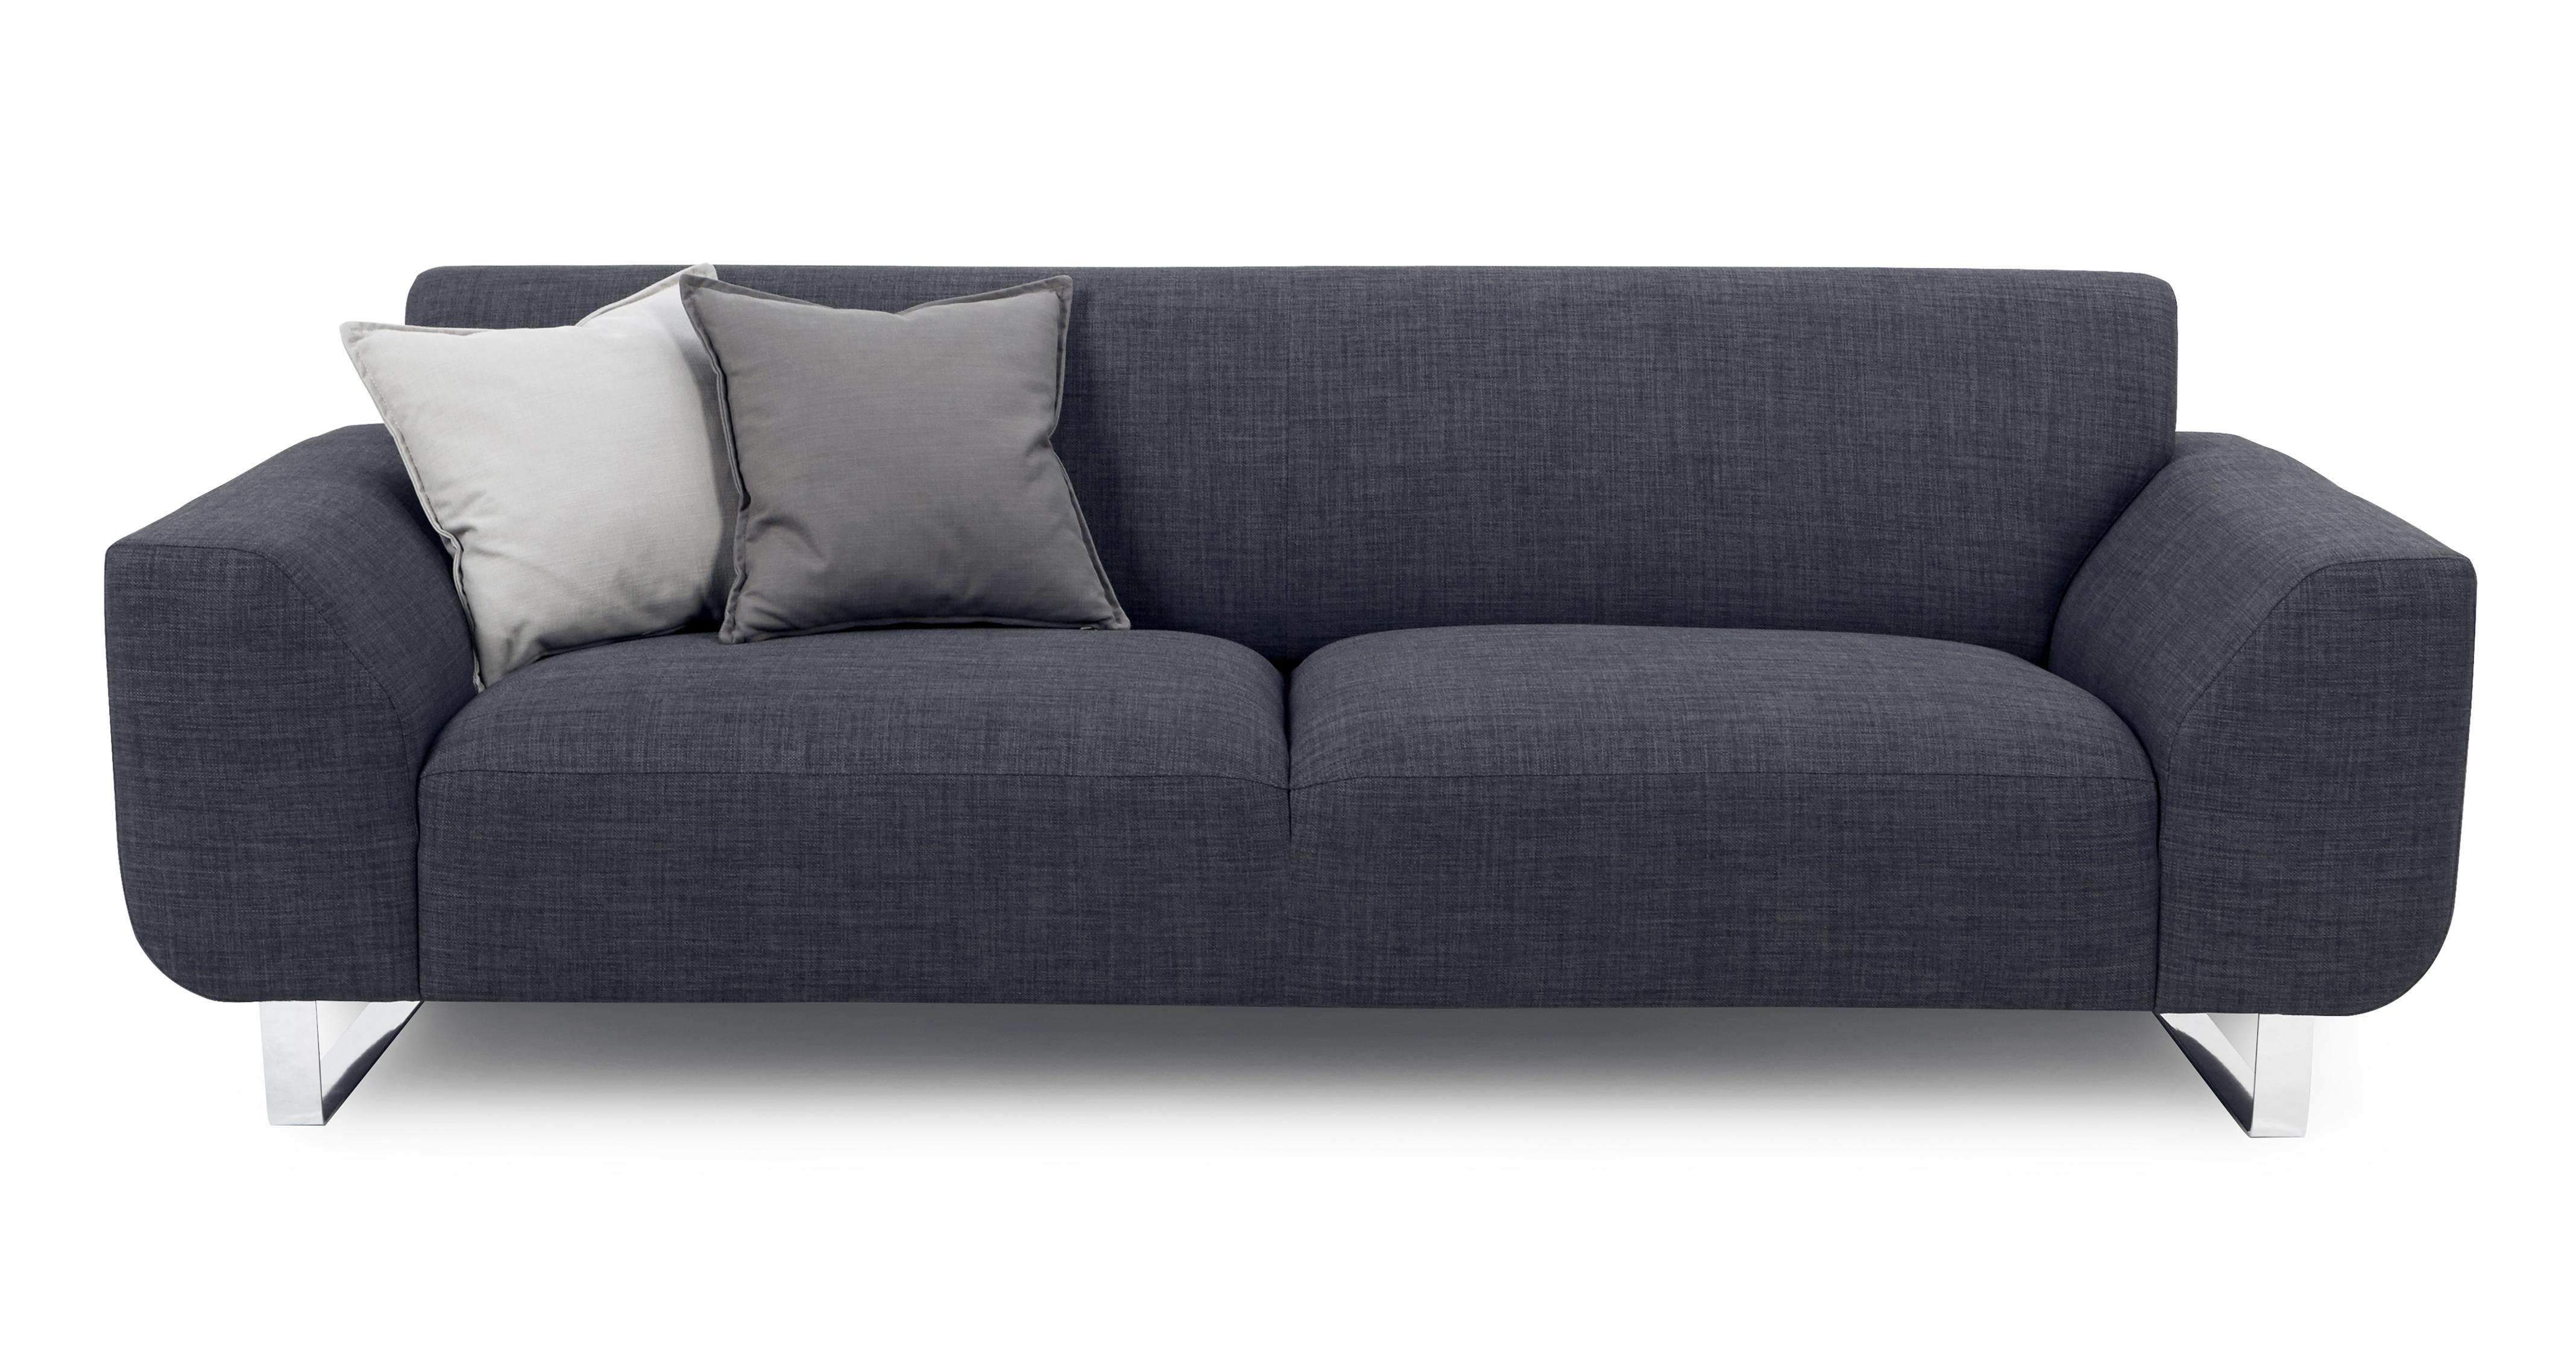 3 Sofa Hardy 3 Seater Sofa Revive Fabric Revive Dfs Ireland